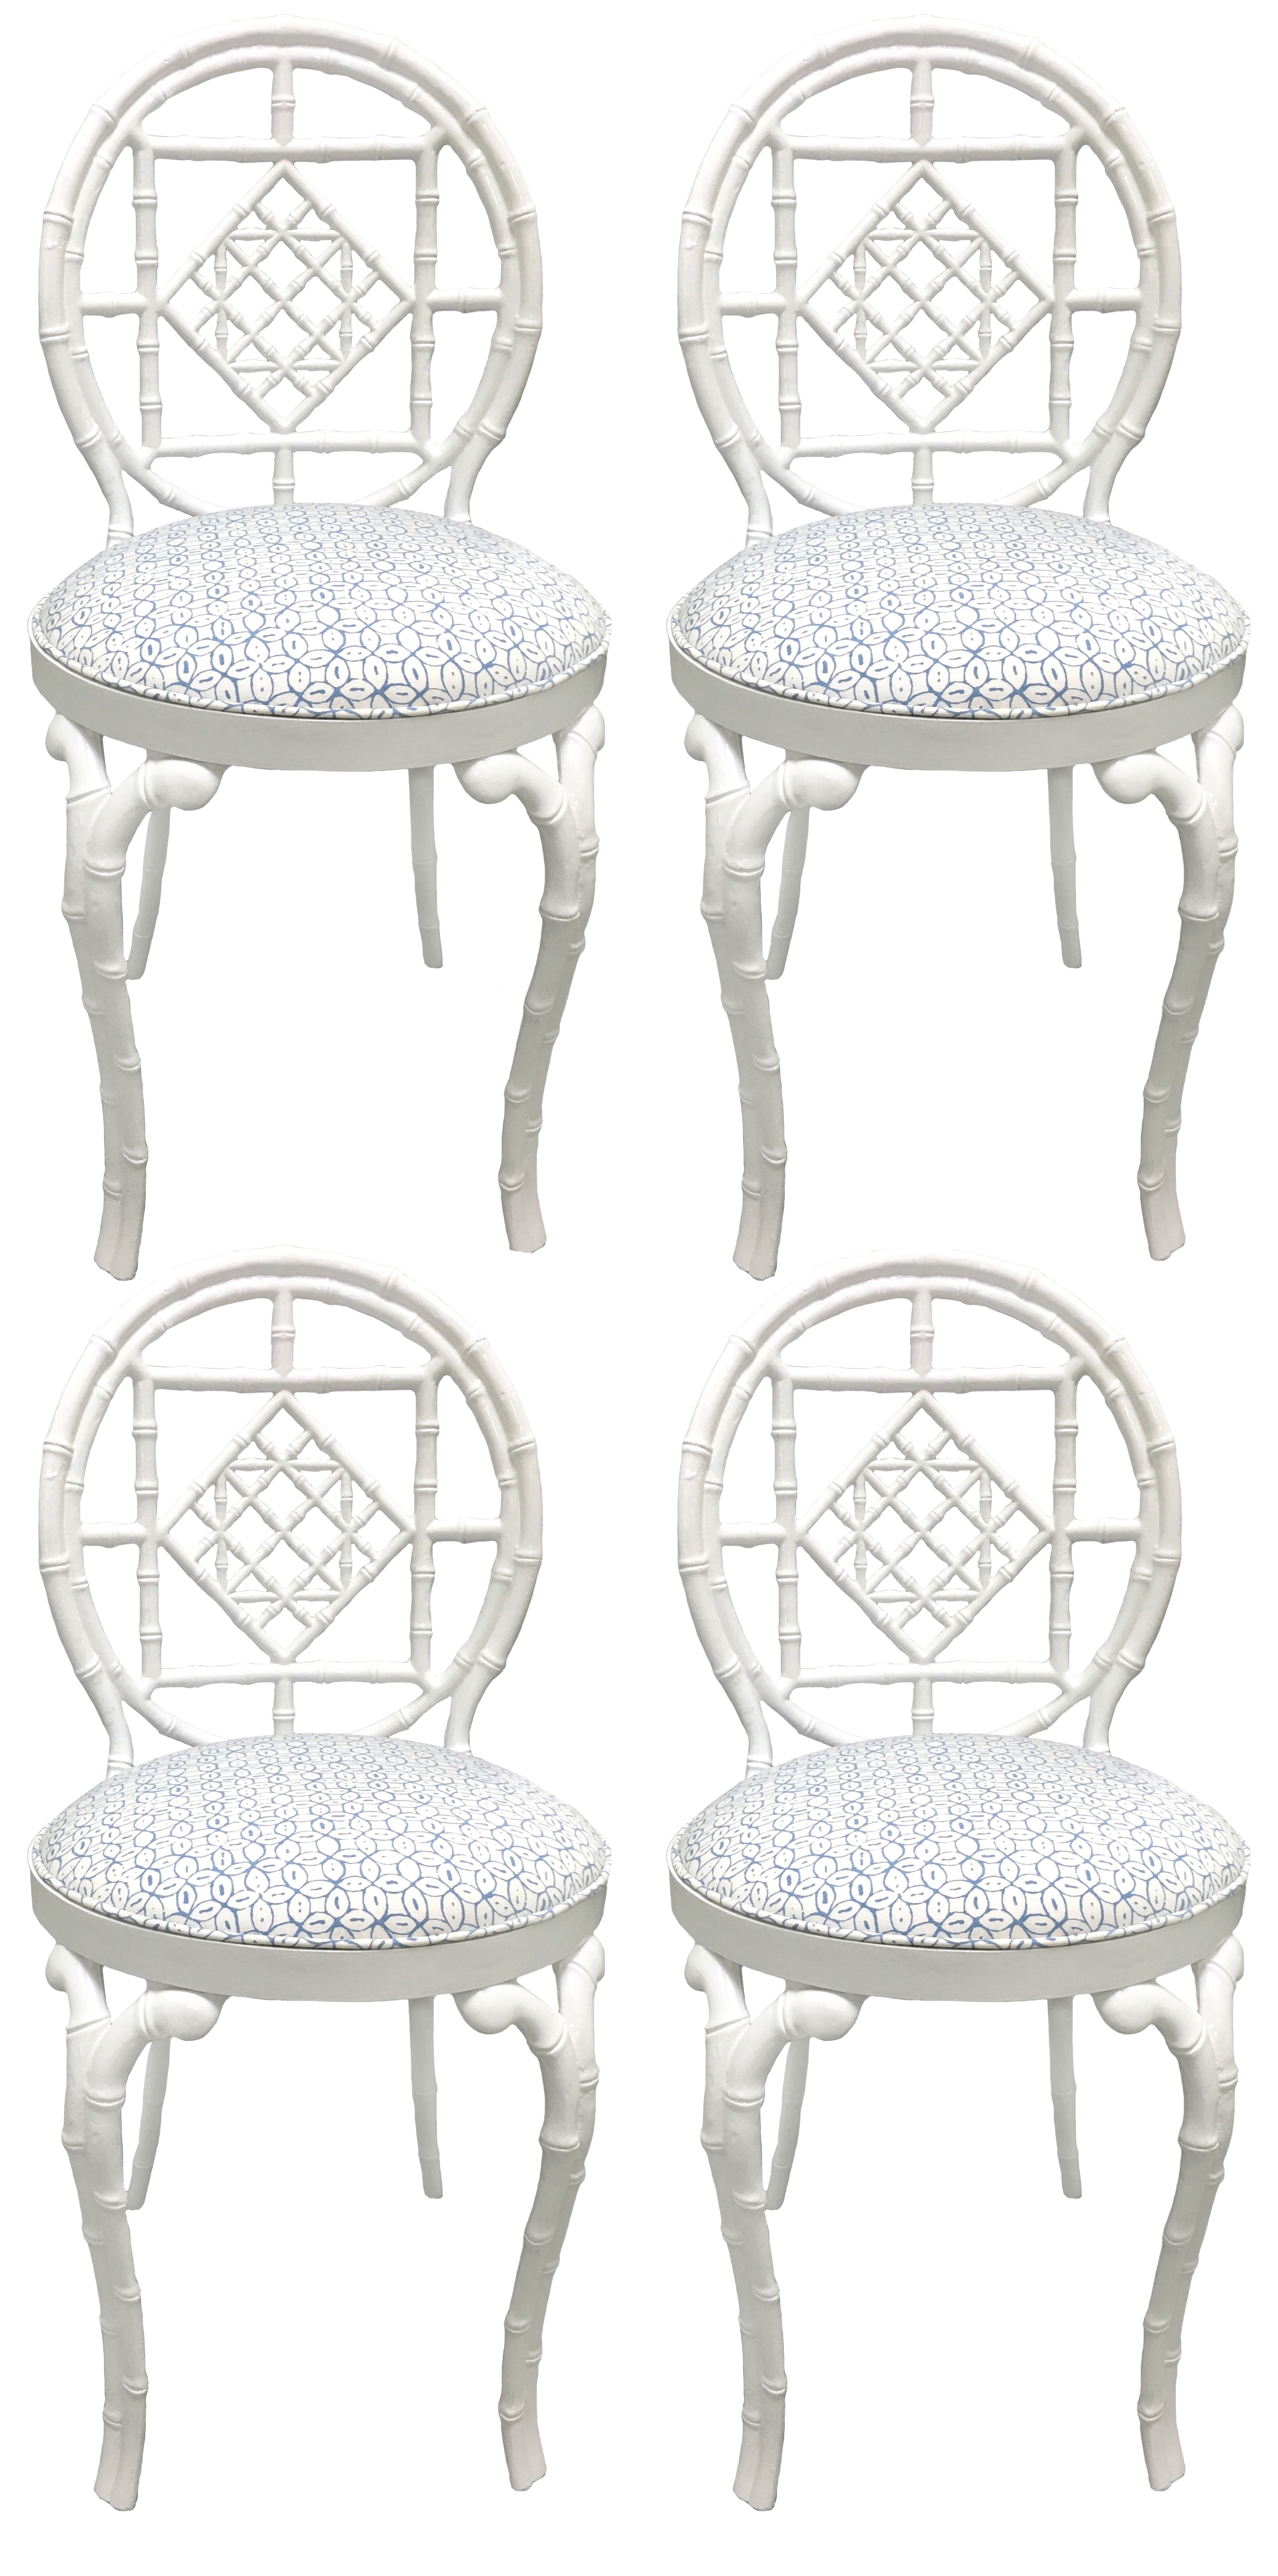 bamboo quadrille upholstered chairs